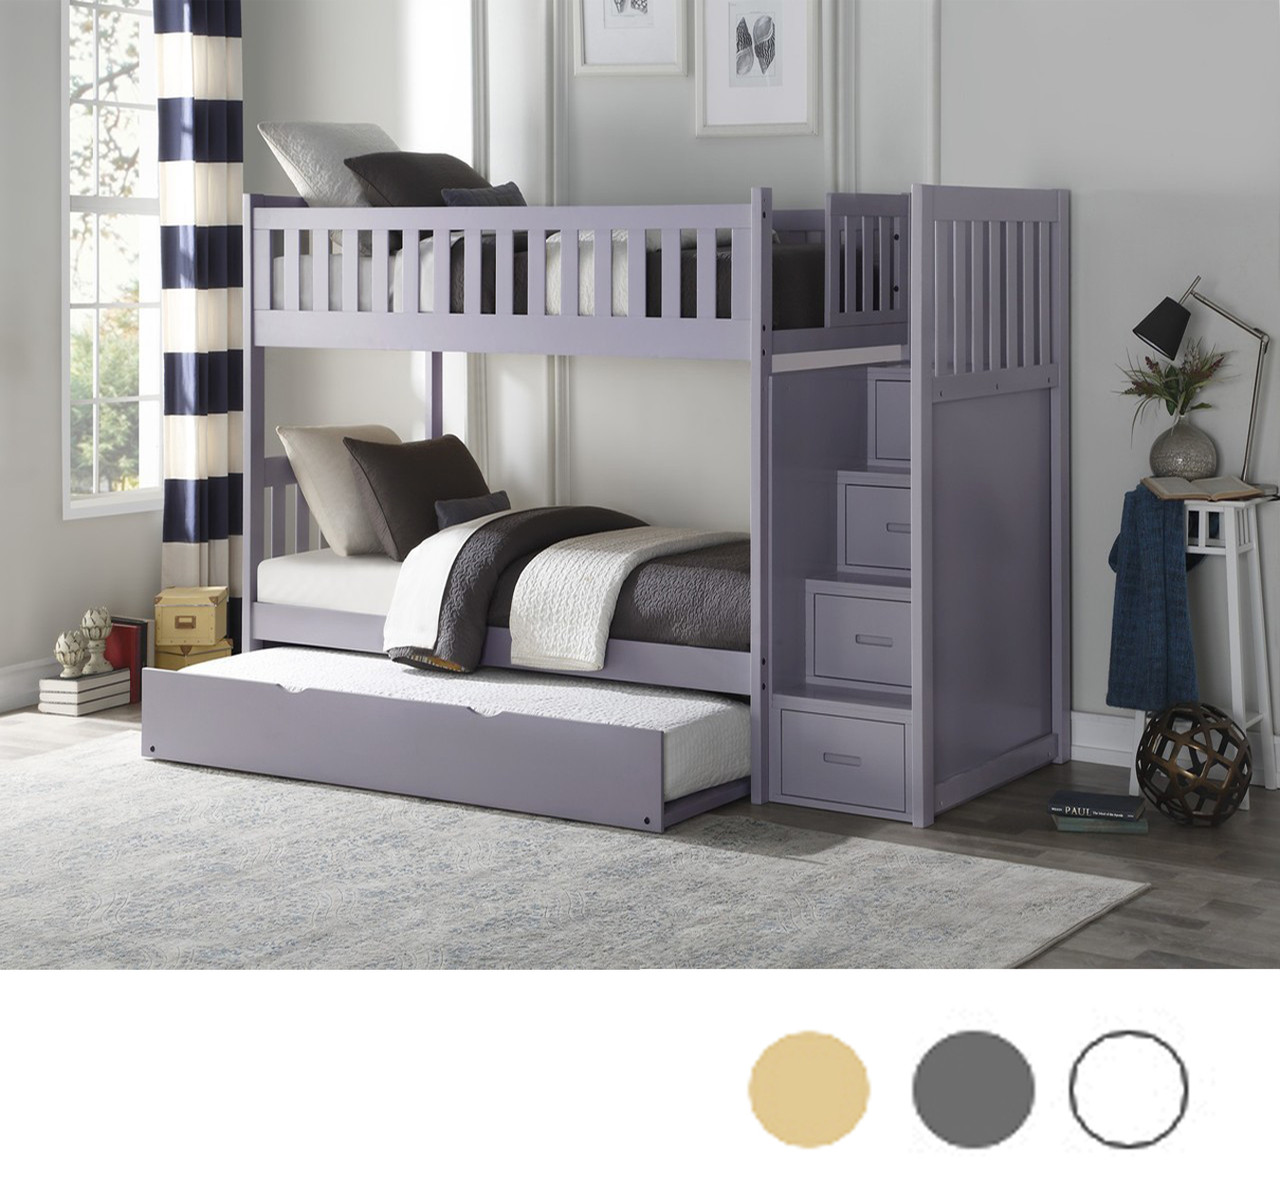 Bed Over Stair Box Google Search: Charlton Pine Twin Over Twin Bunk Bed With Stairs